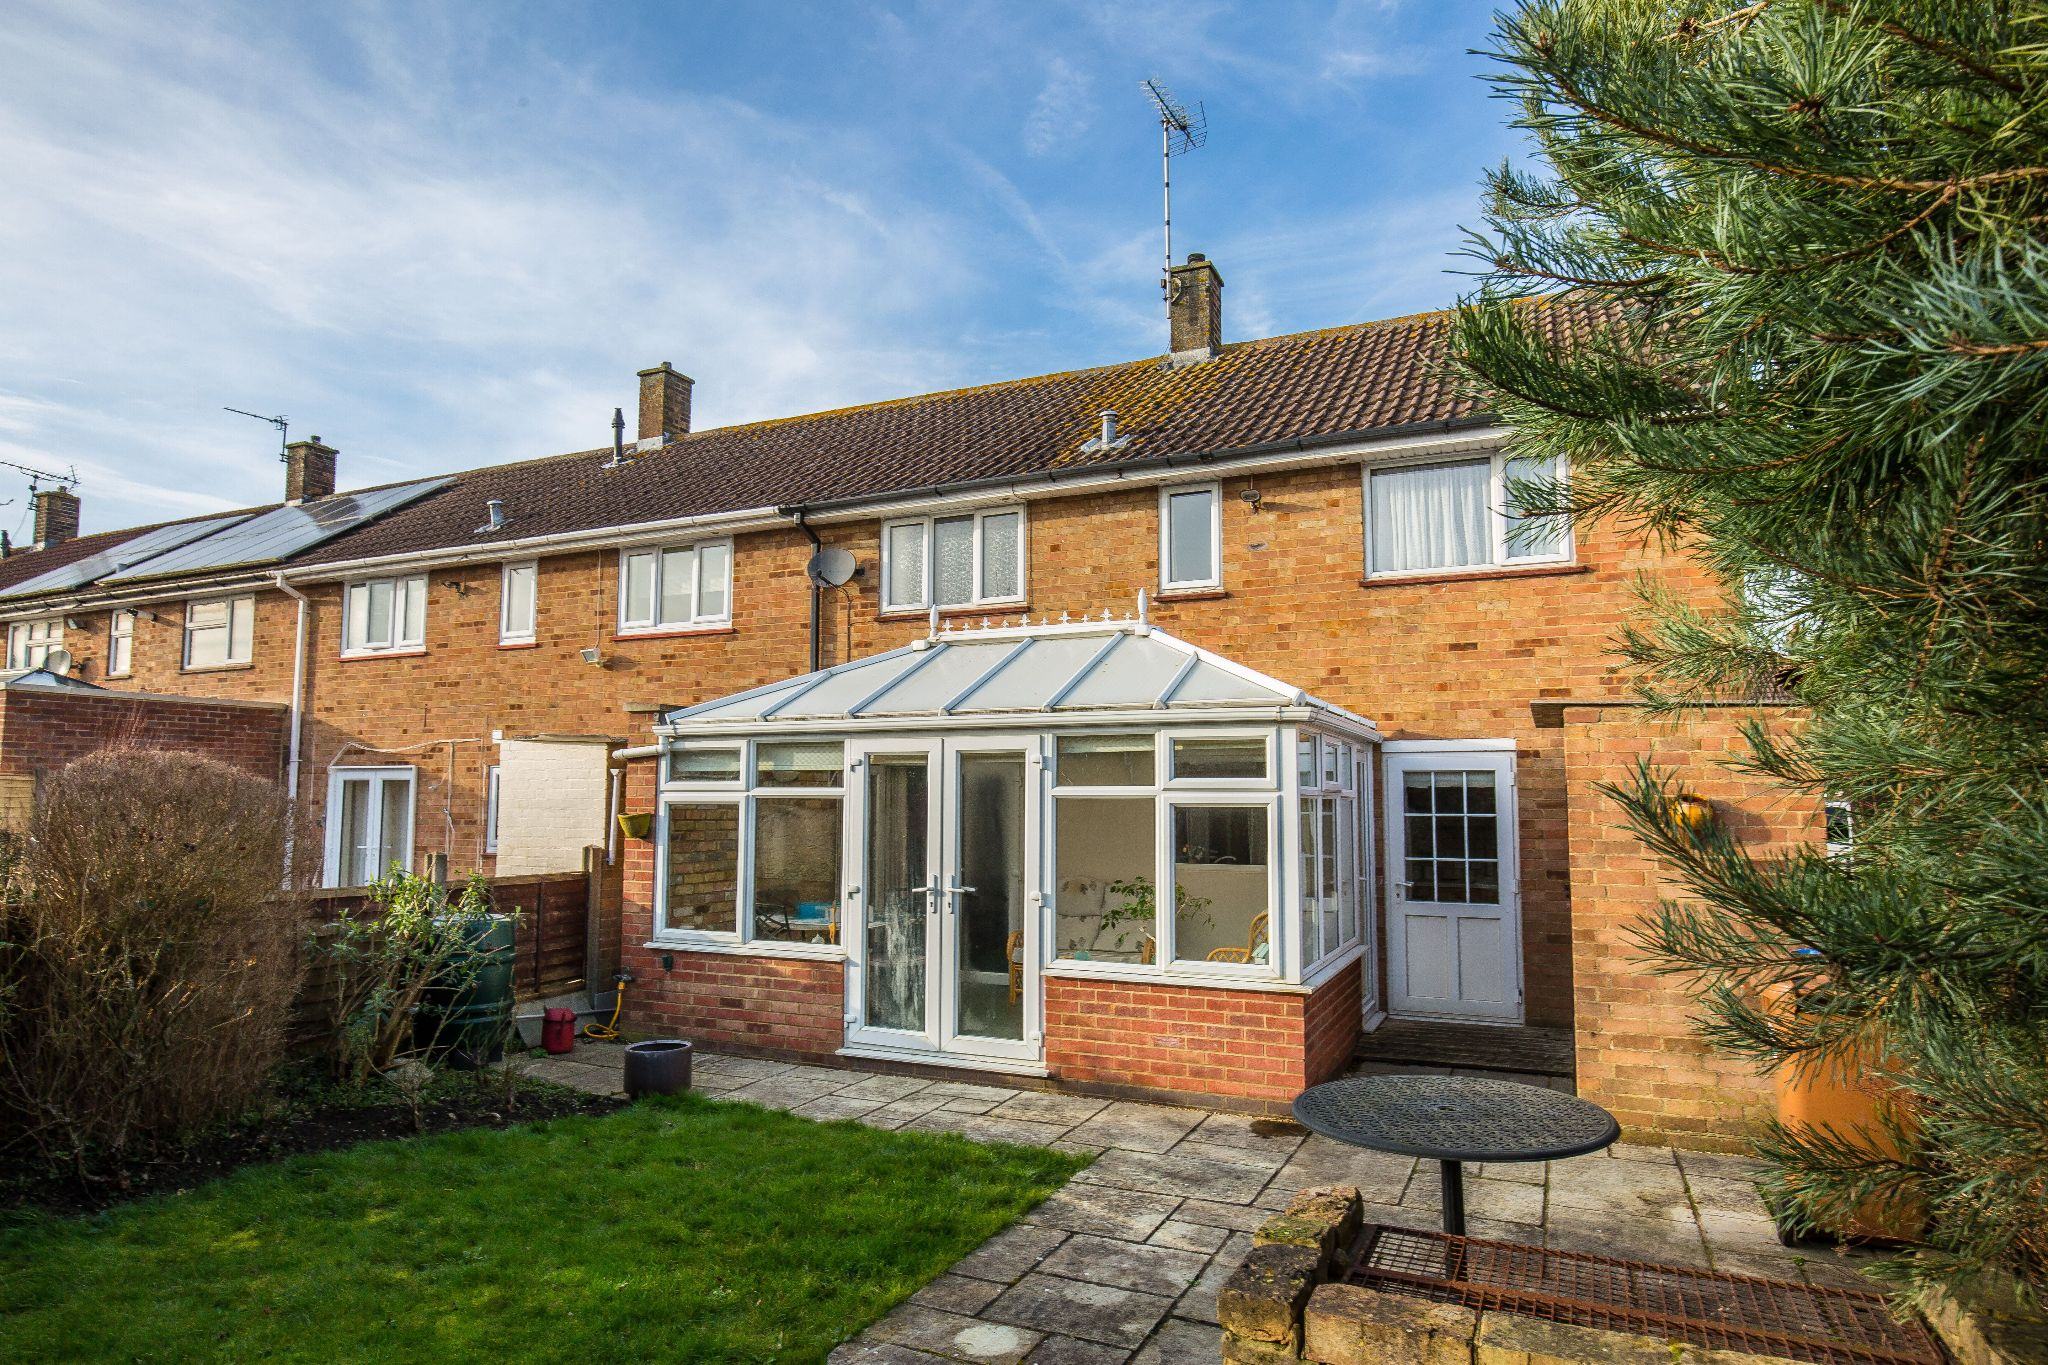 3 bedroom mid terraced house SSTC in Welham Green - Photograph 1